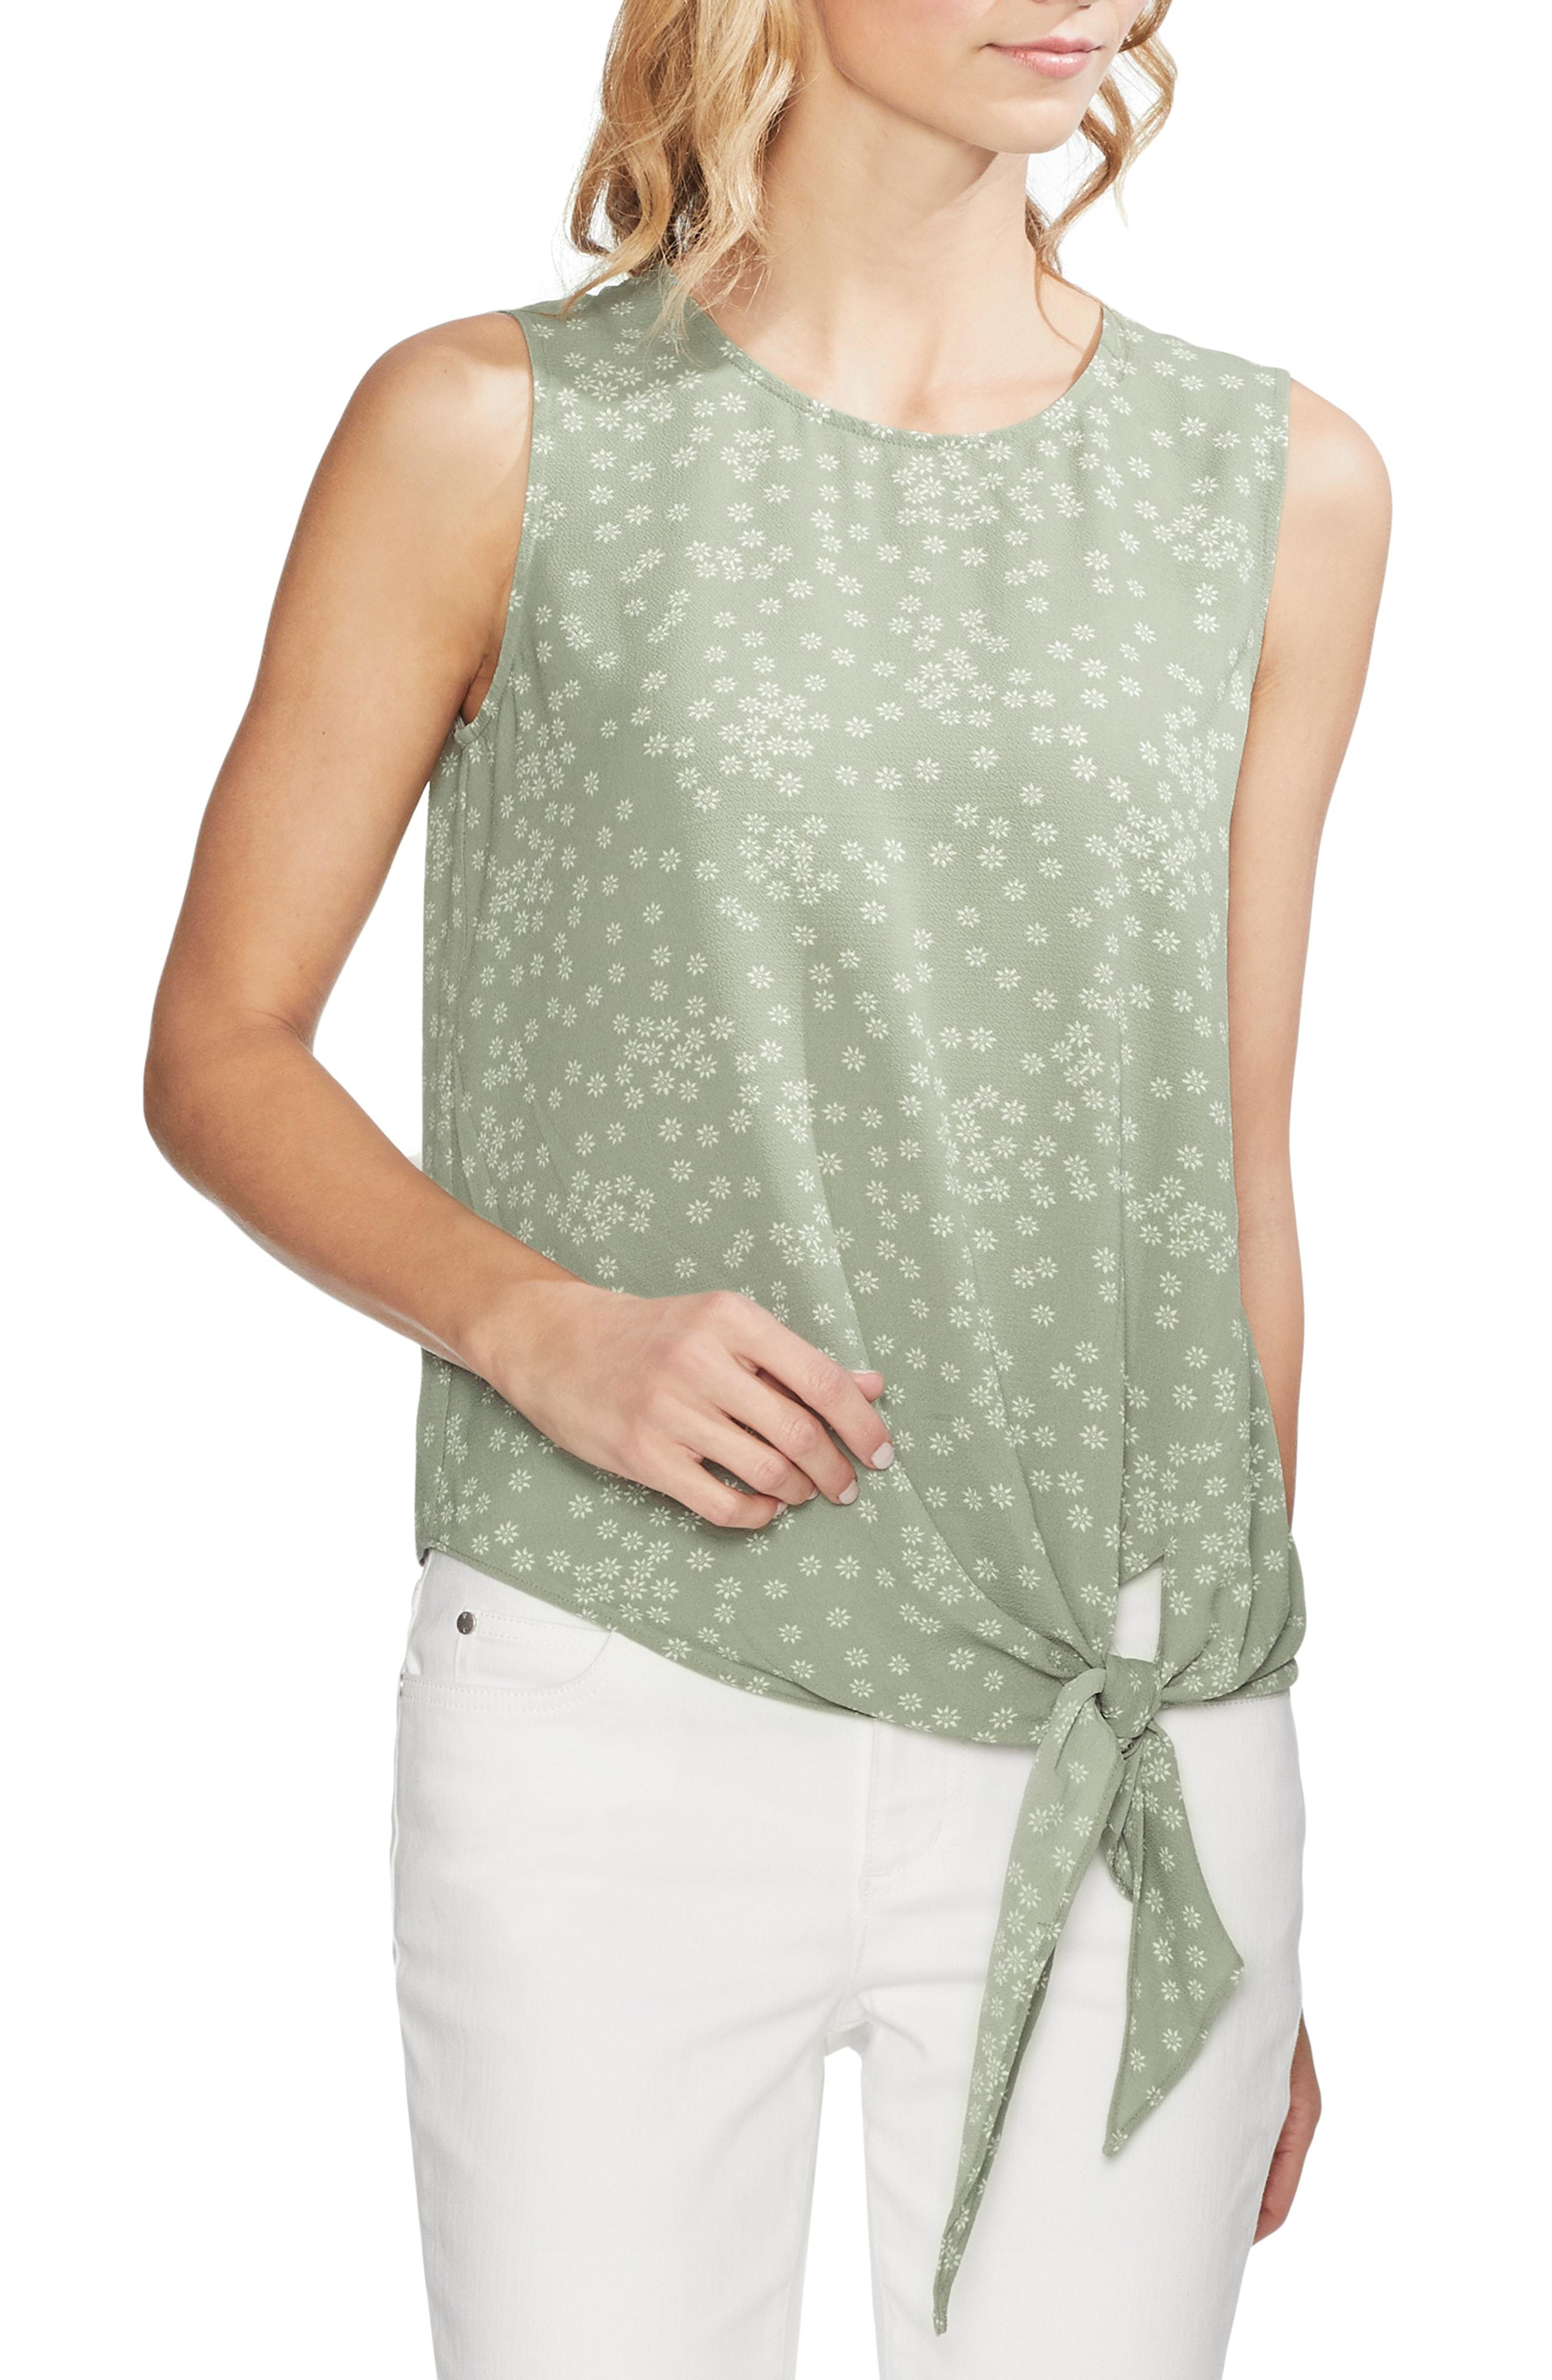 540172265bd3 Lyst - Vince Camuto Ditsy Showers Tie Front Blouse in Green